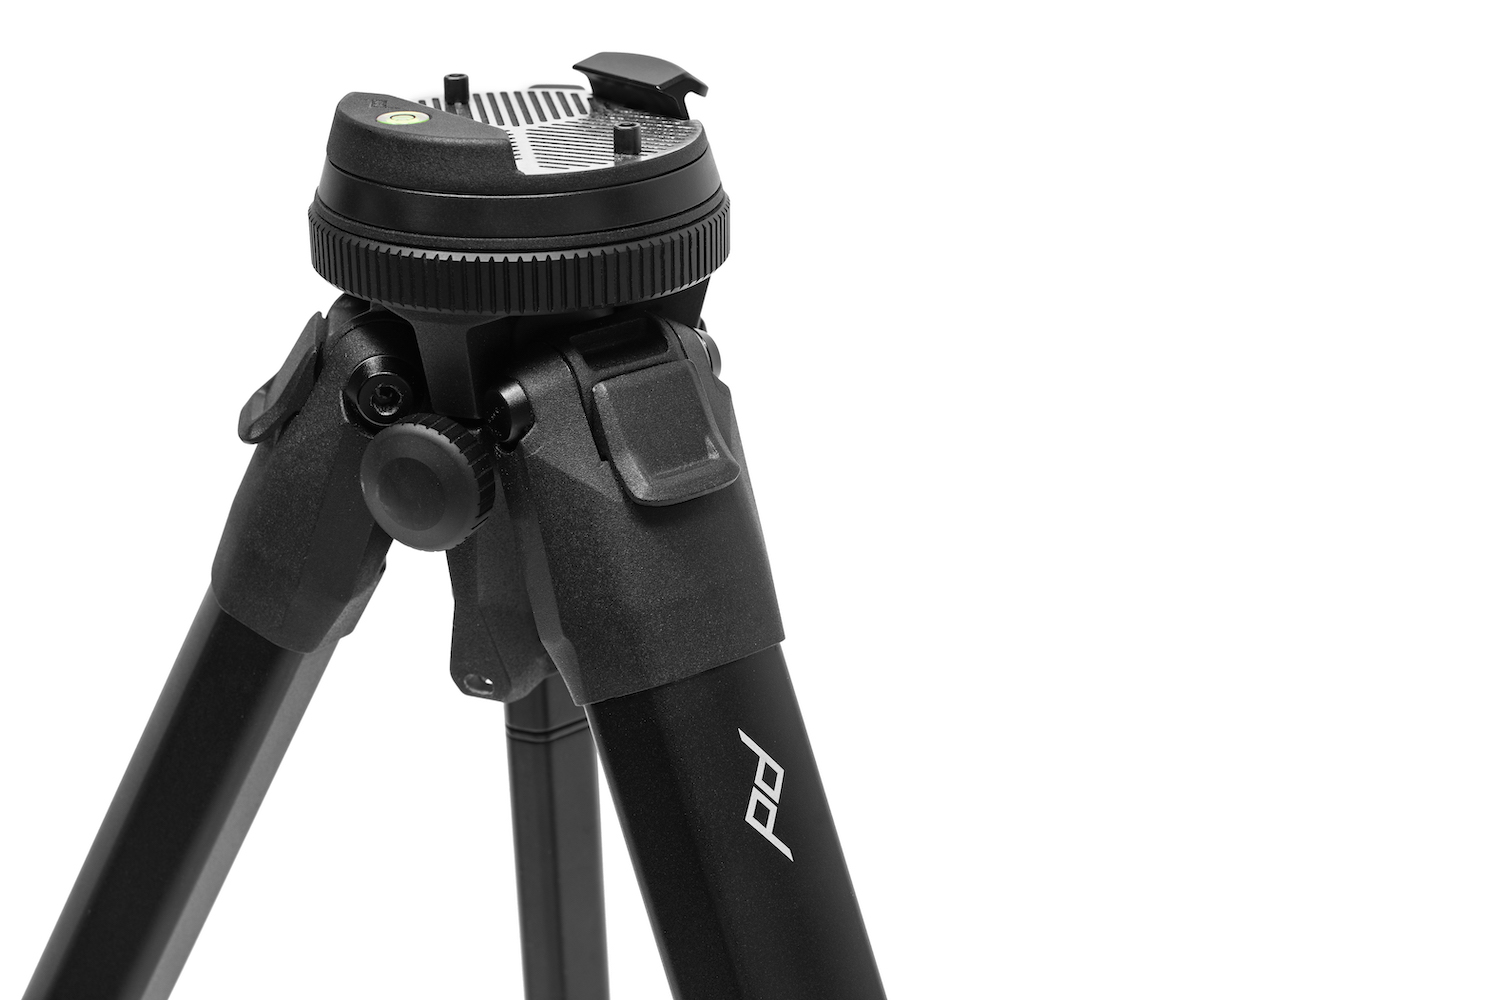 peak-design-travel-tripod-review-4